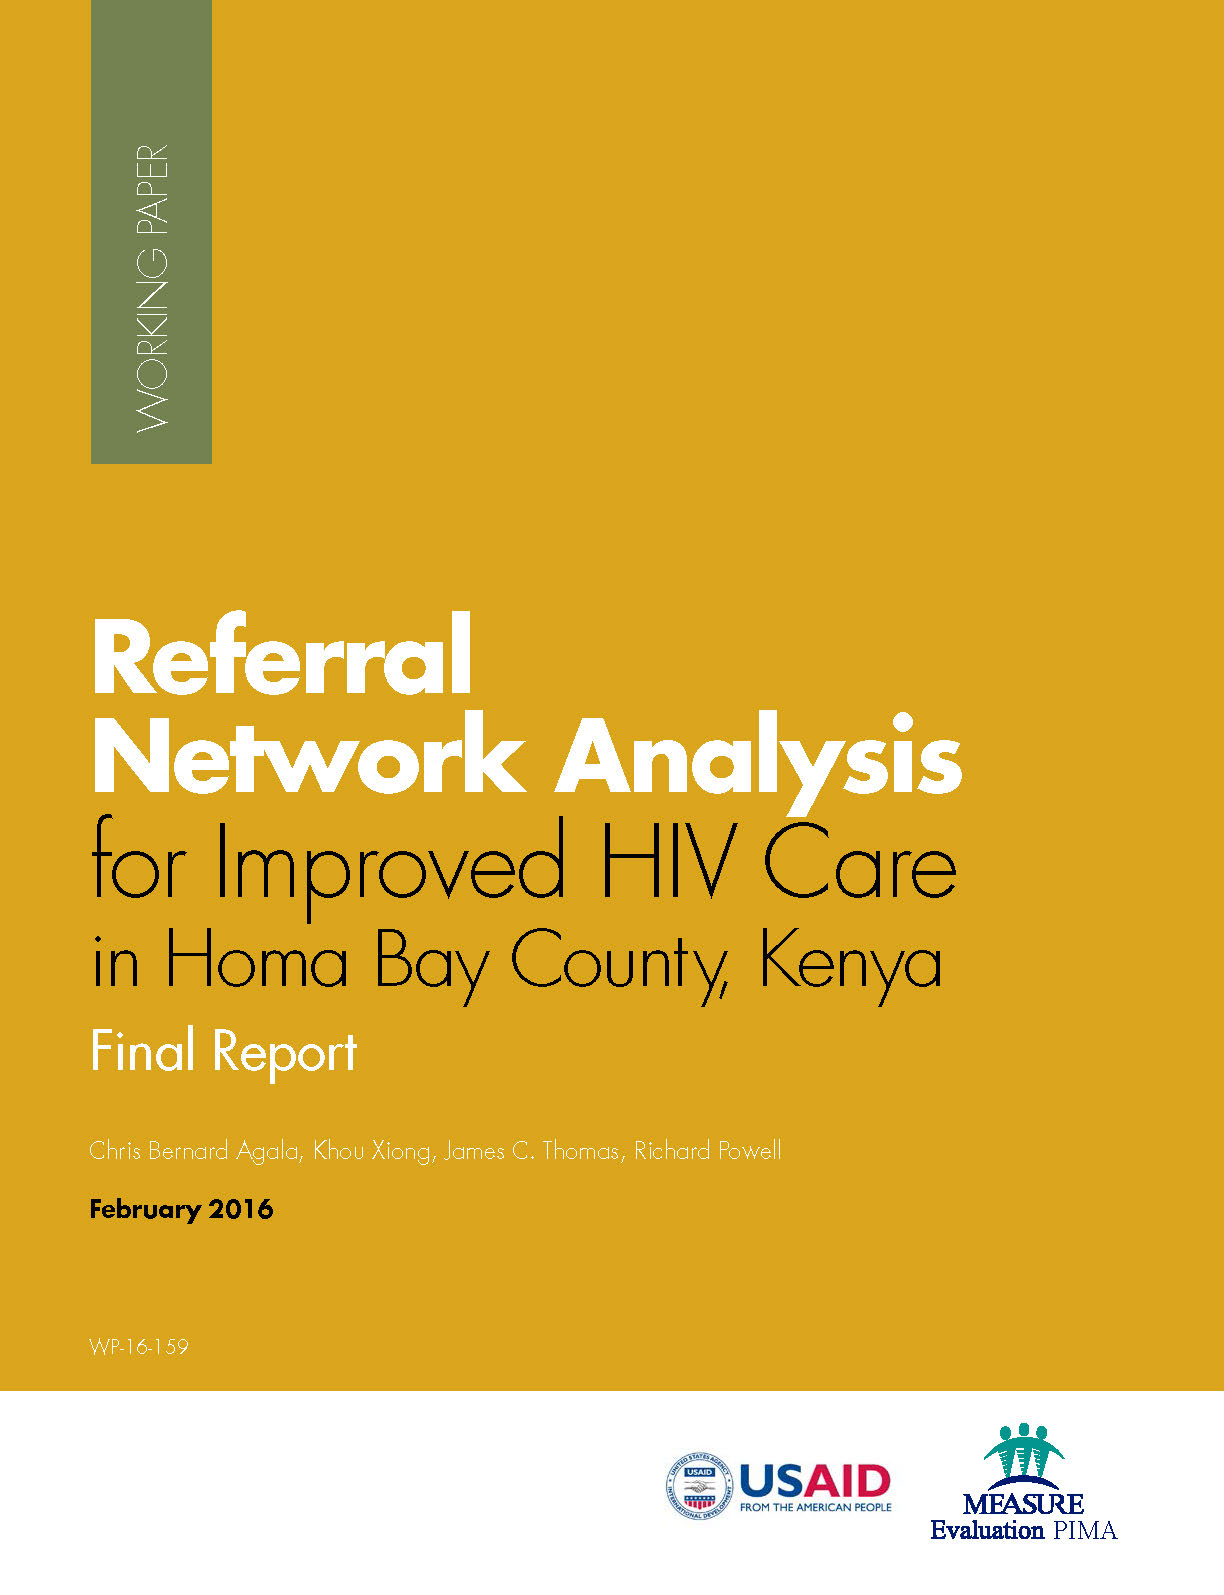 Referral Network Analysis for Improved HIV Care in Homa Bay County